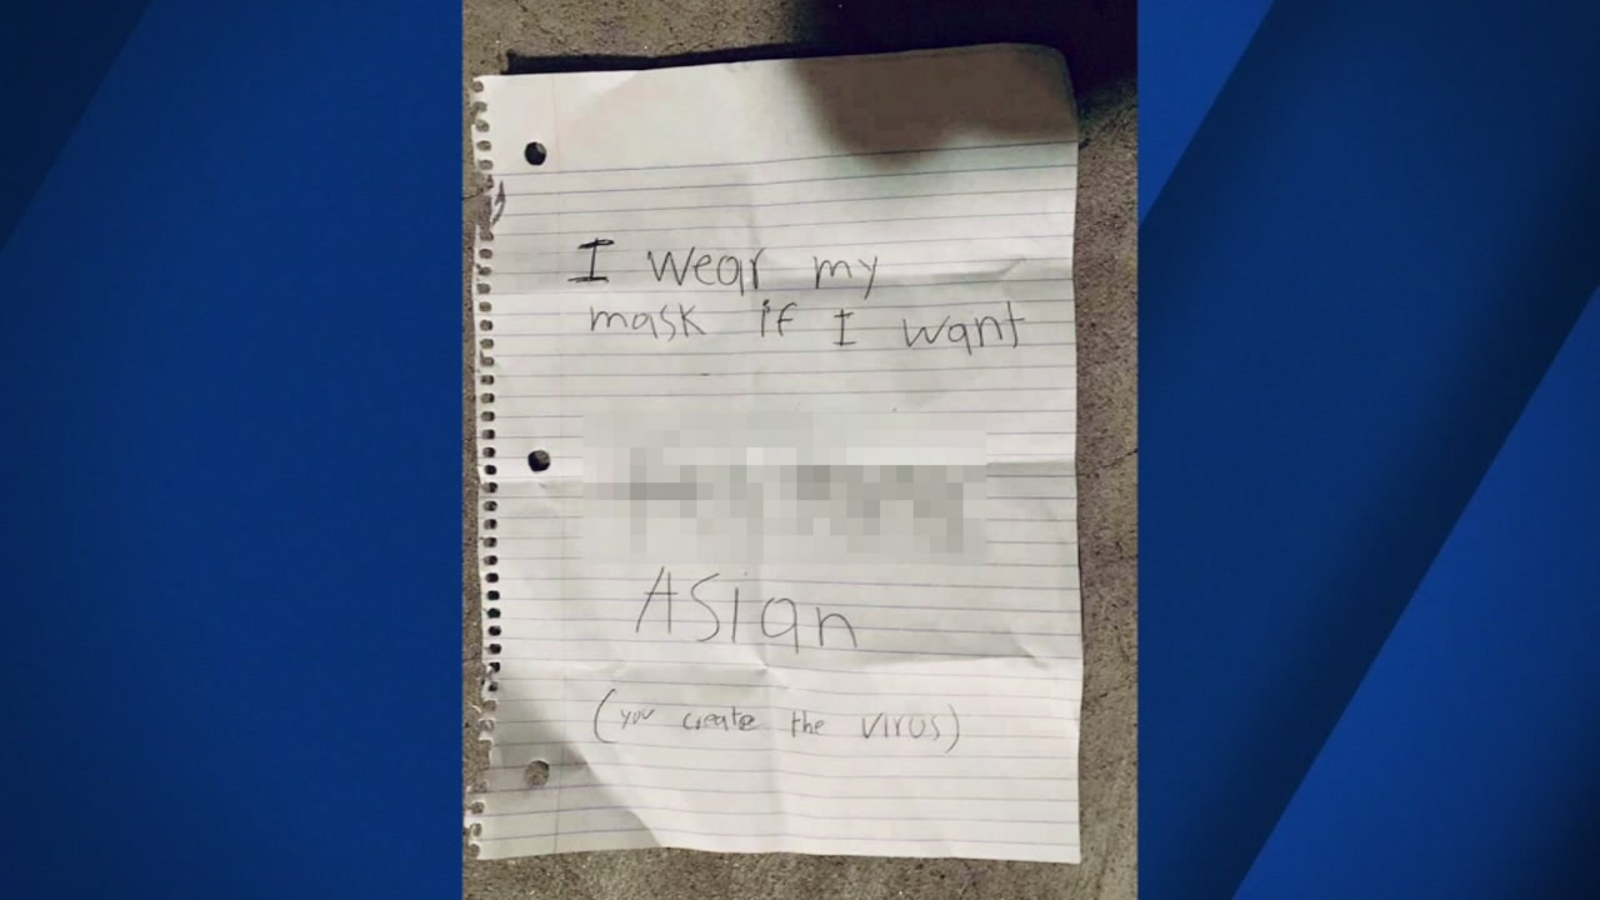 abc7news.com: 'You create the virus': Asian woman targeted with 'racially motivated' vandalism, letter left at San Francisco home